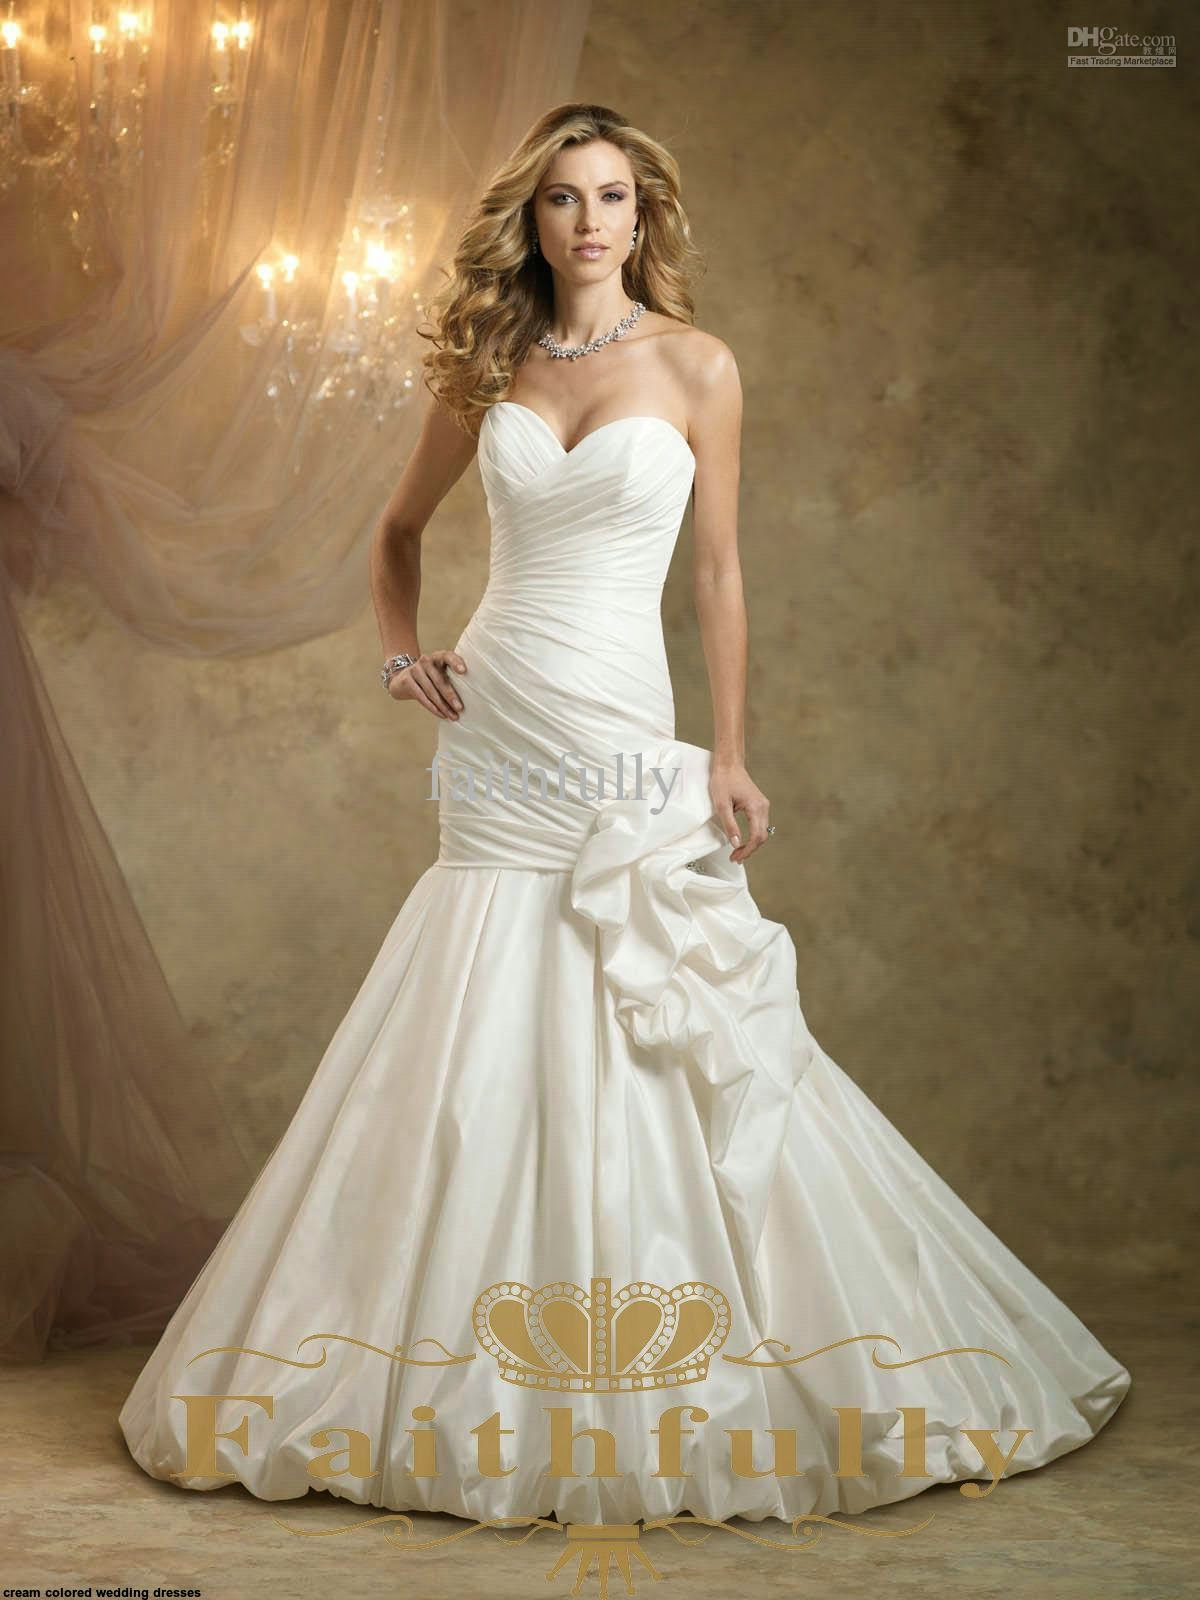 Tips for Cream Colored Wedding Dresses | Wedding Dresses Collections